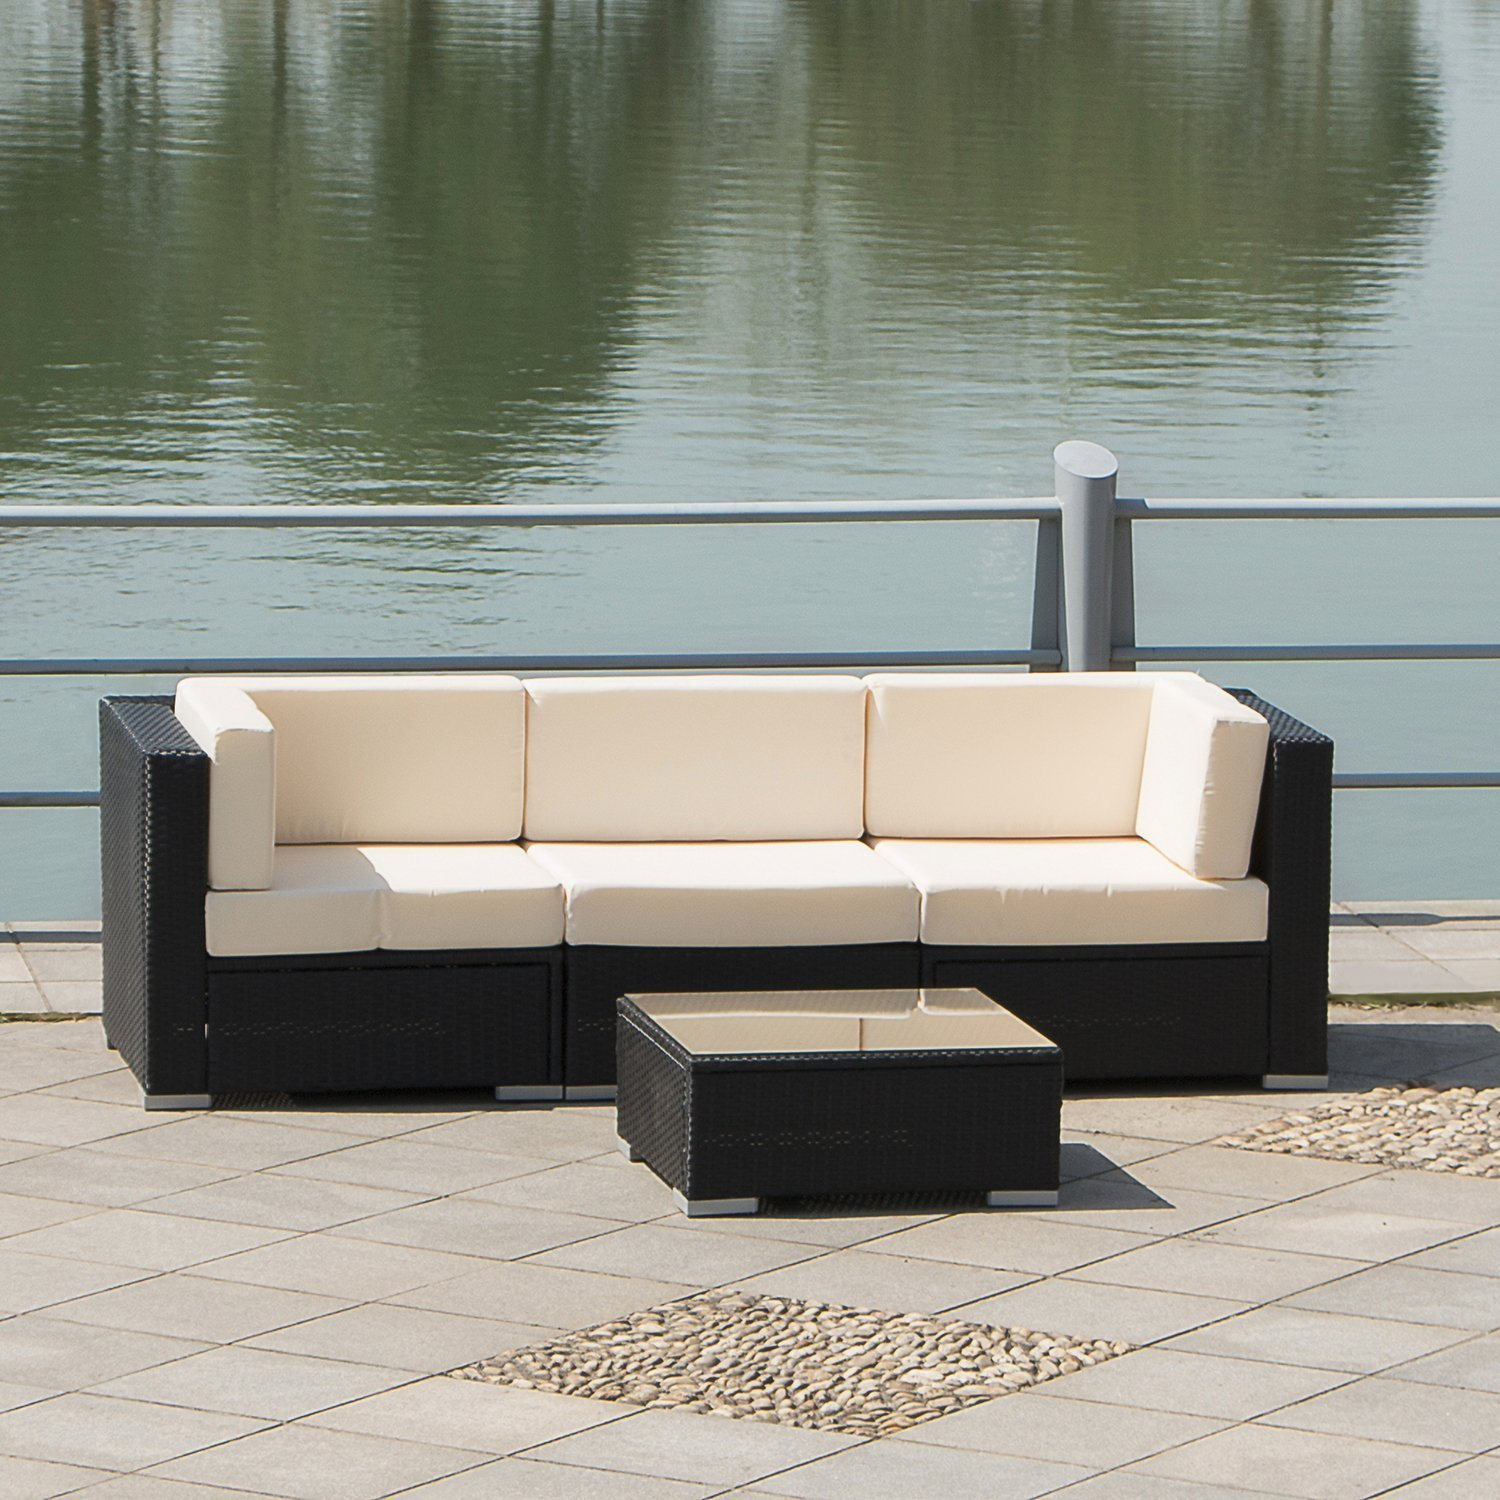 Beautiful Walcut Series Of Hawaii Beach 4PCS Patio Rattan High Quality Wicker Sofa  Couch With Table Furniture